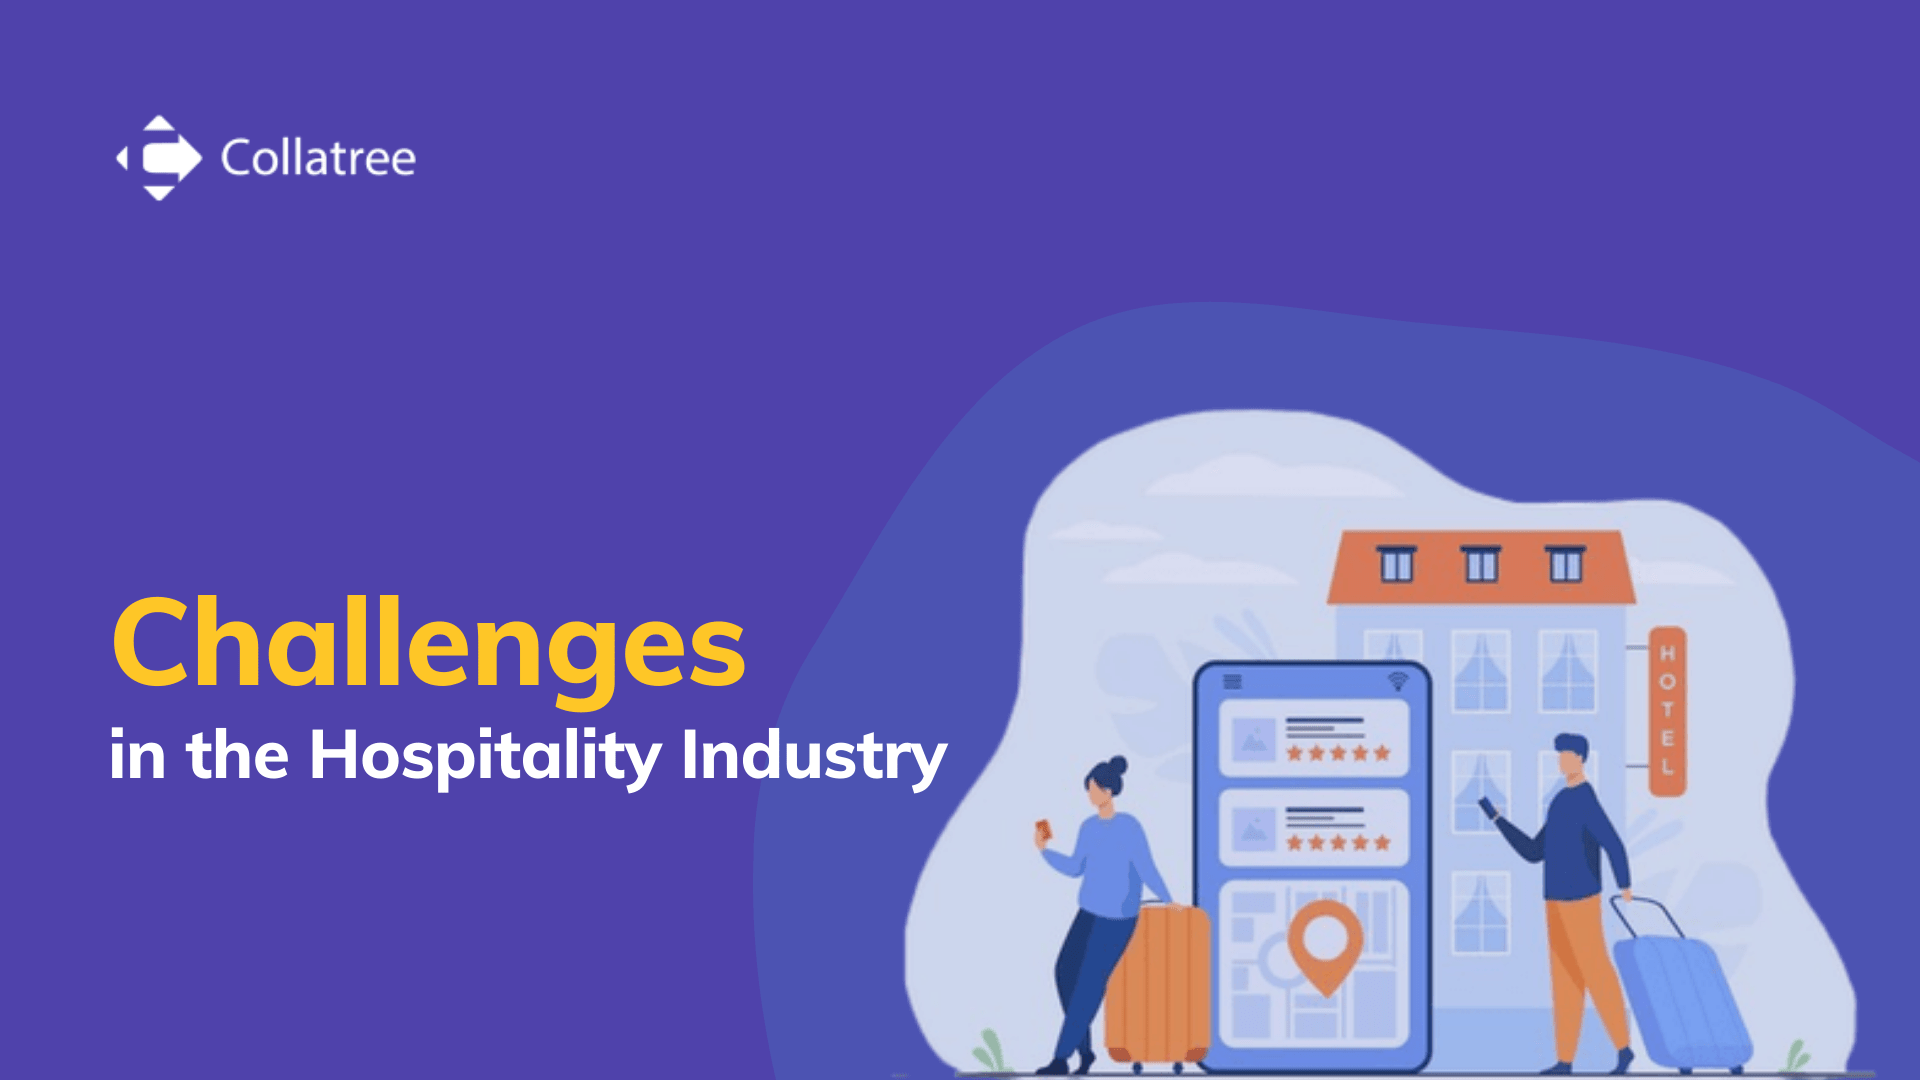 Challenges in Hospitality Industry